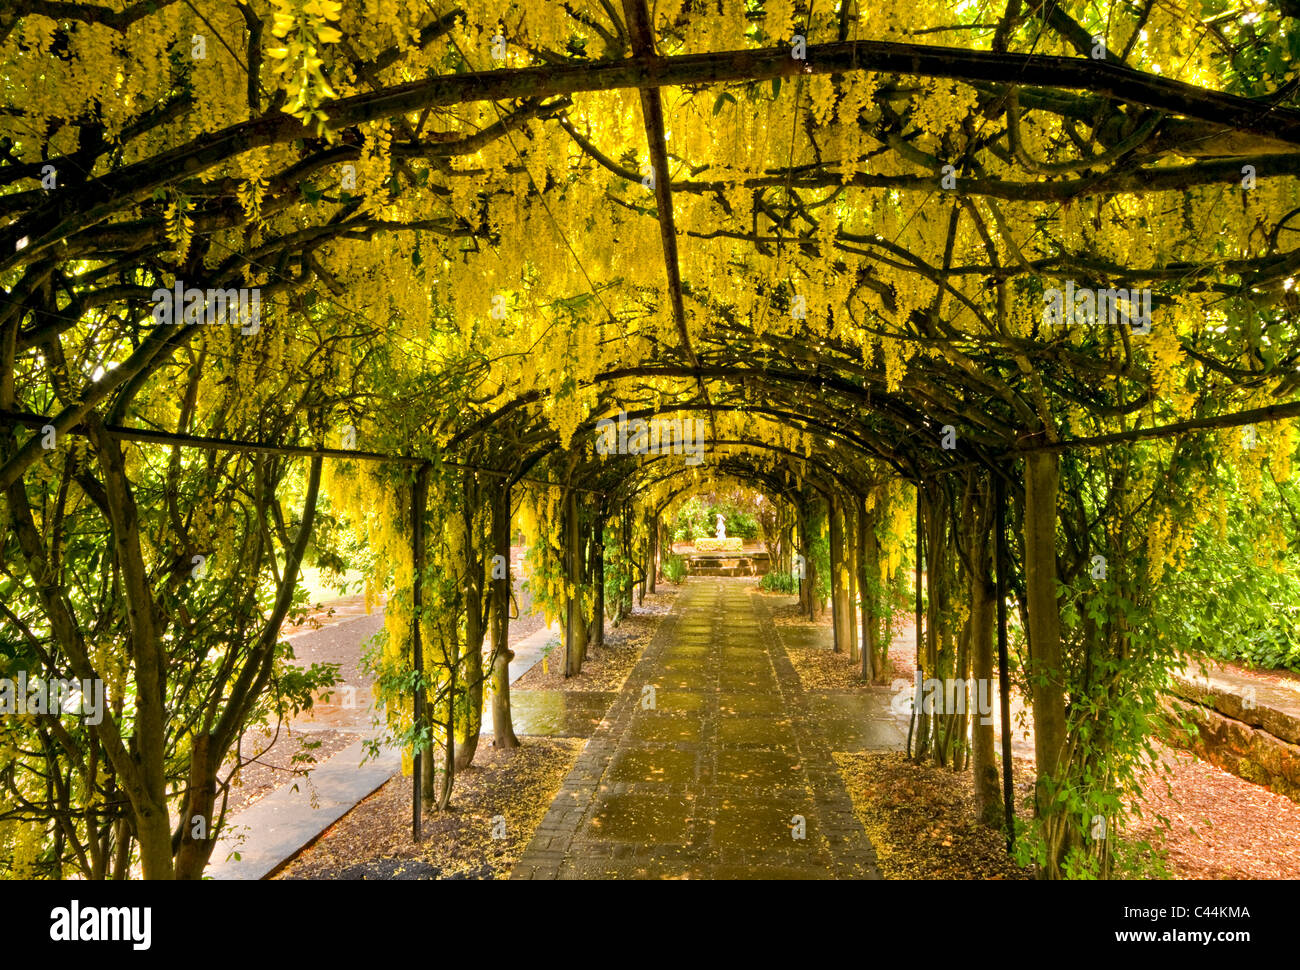 The Laburnum Arch, Ness Botanical Gardens, The Wirral, Merseyside, England,  UK